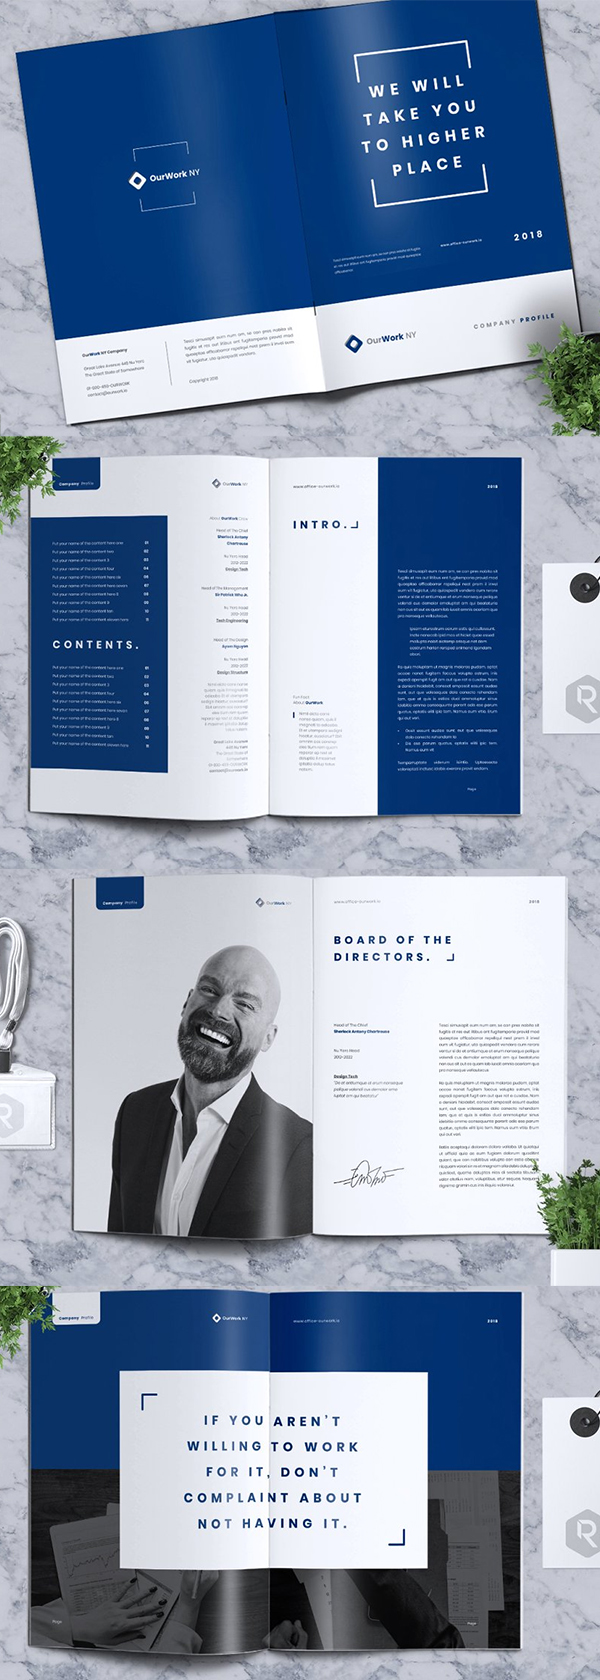 Ourwork - Company Profile